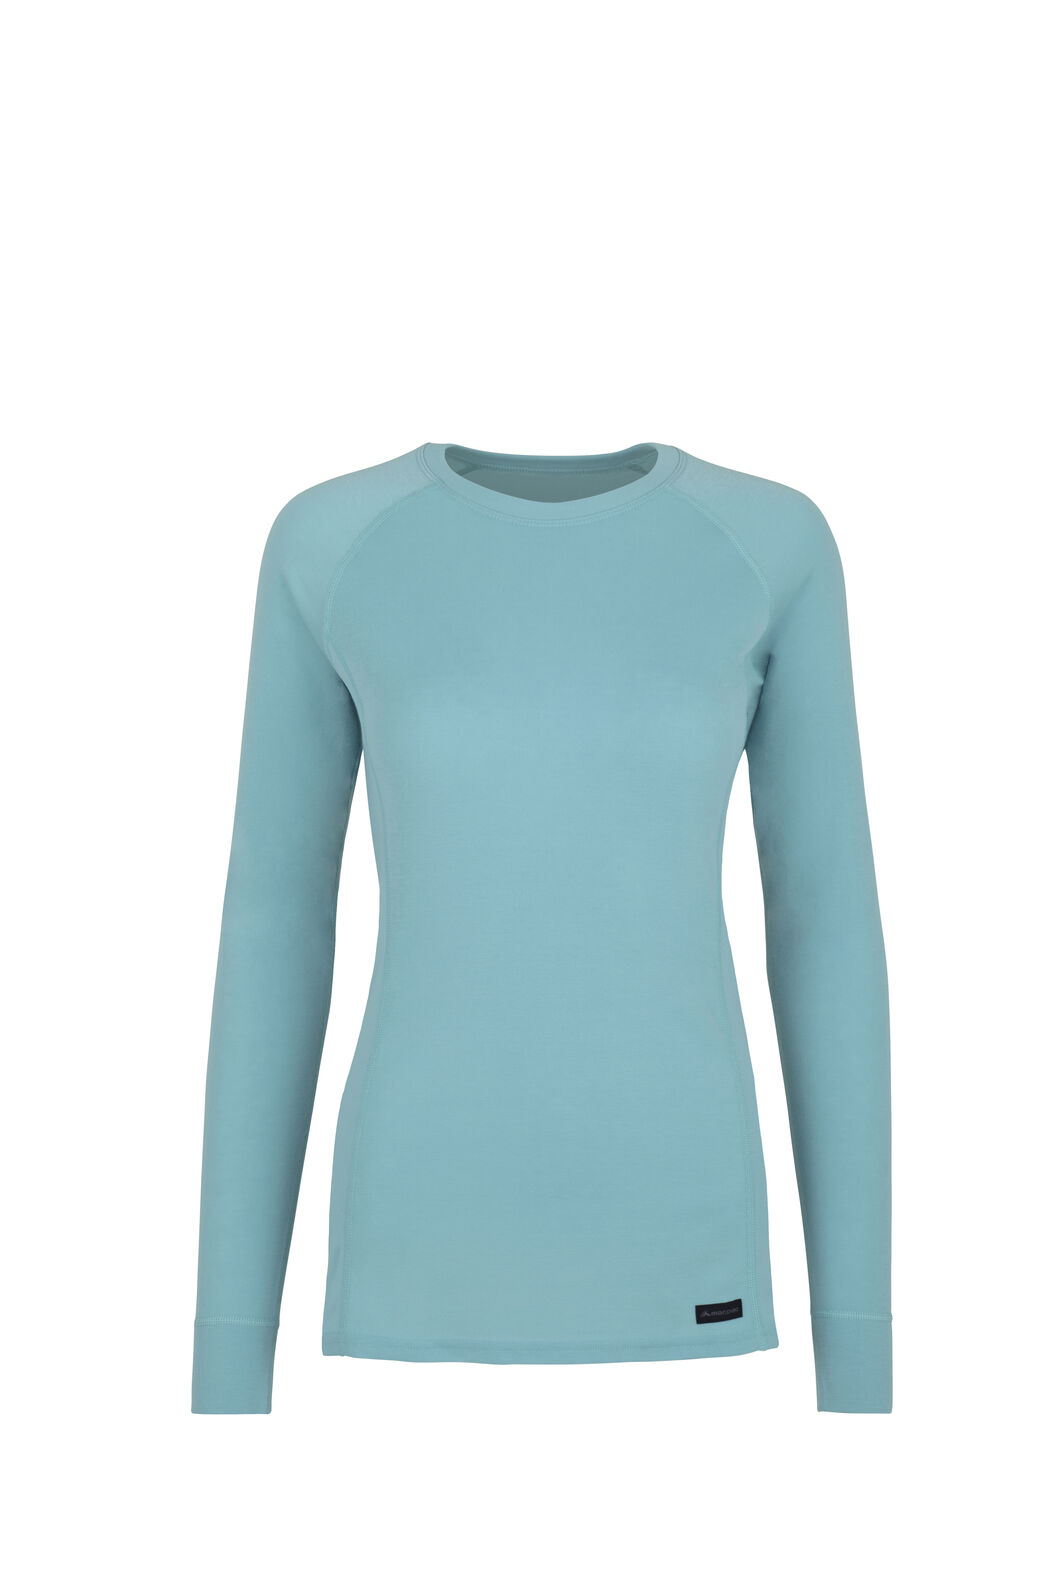 Macpac Geothermal Long Sleeve Top - Women's, Etheral Blue, hi-res